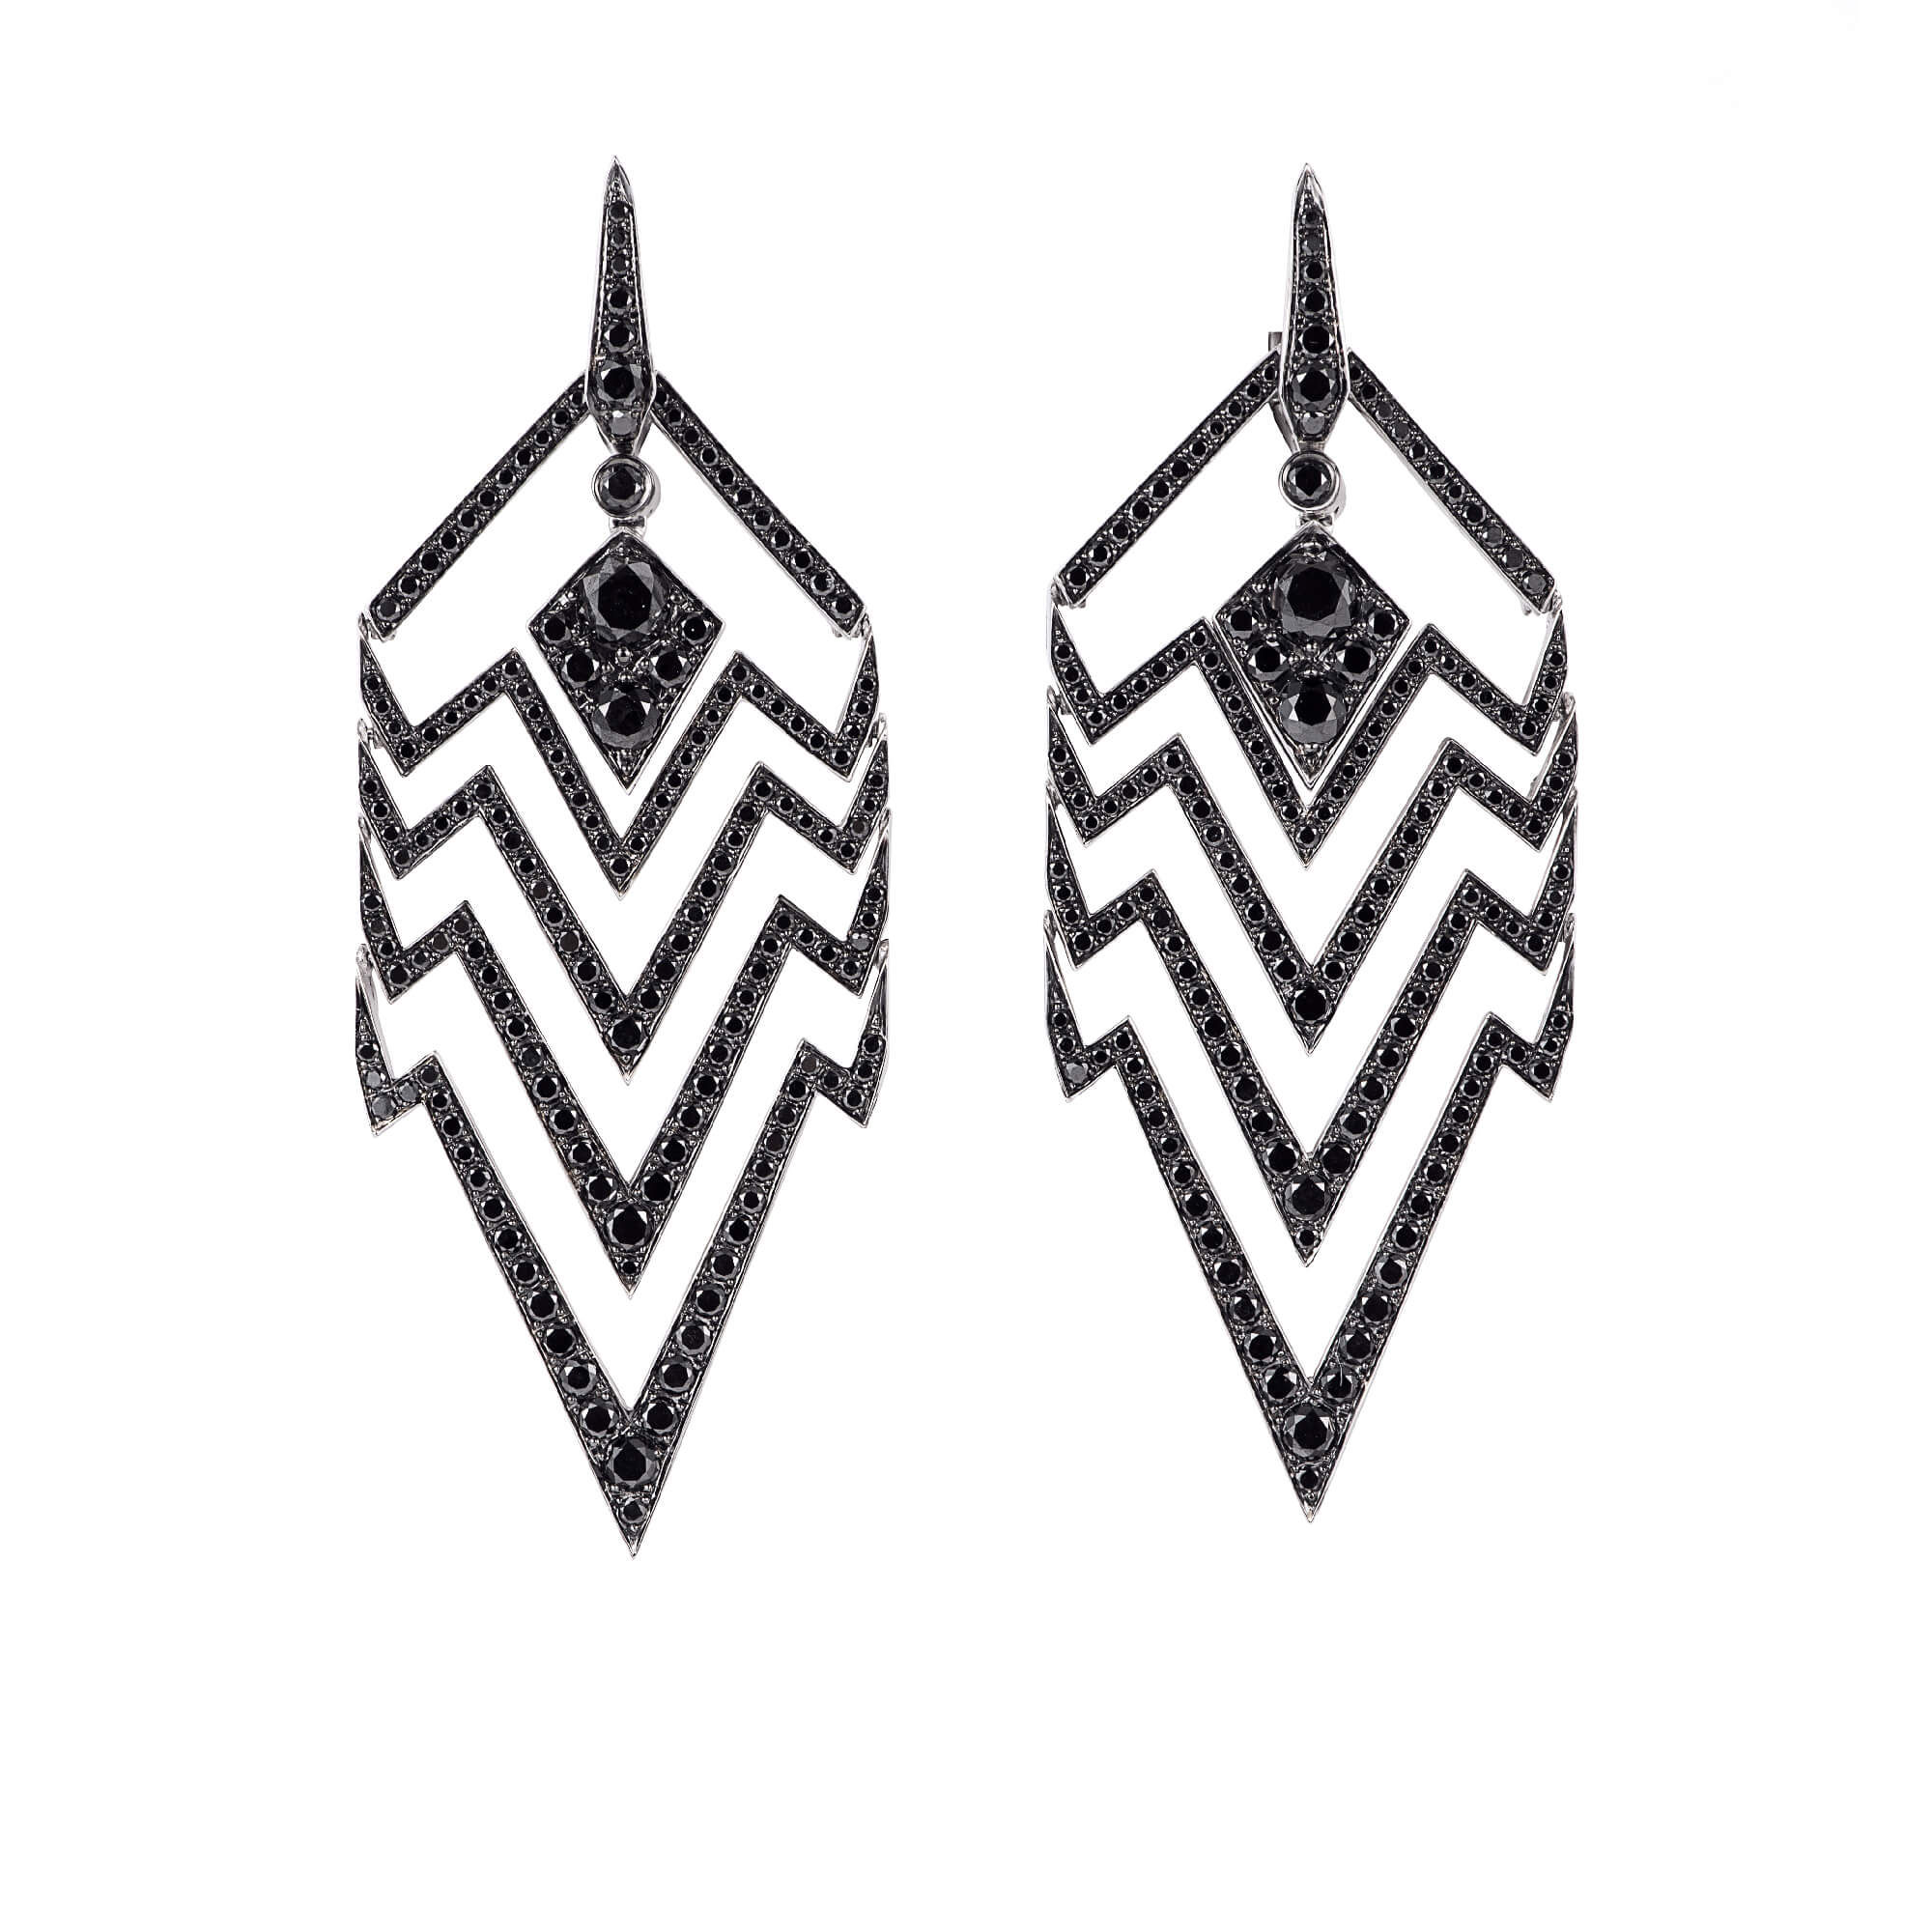 White Gold & Black Diamond Earrings | Lady Stardust